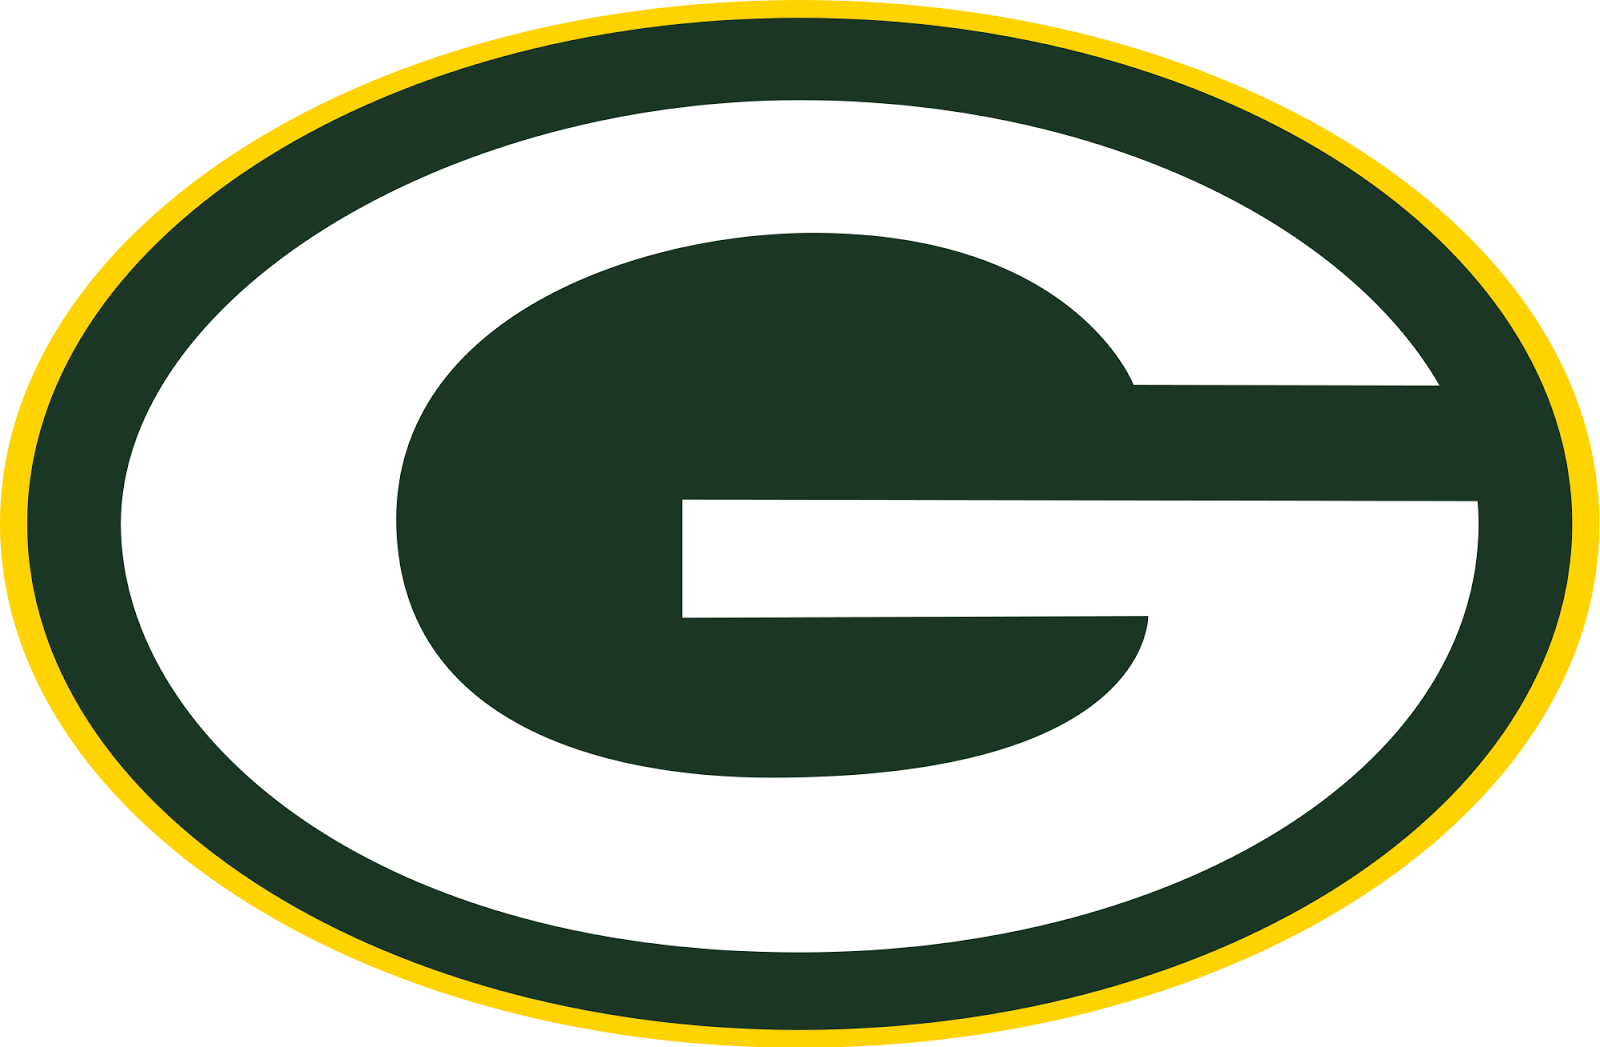 clip art for green bay packers - photo #15